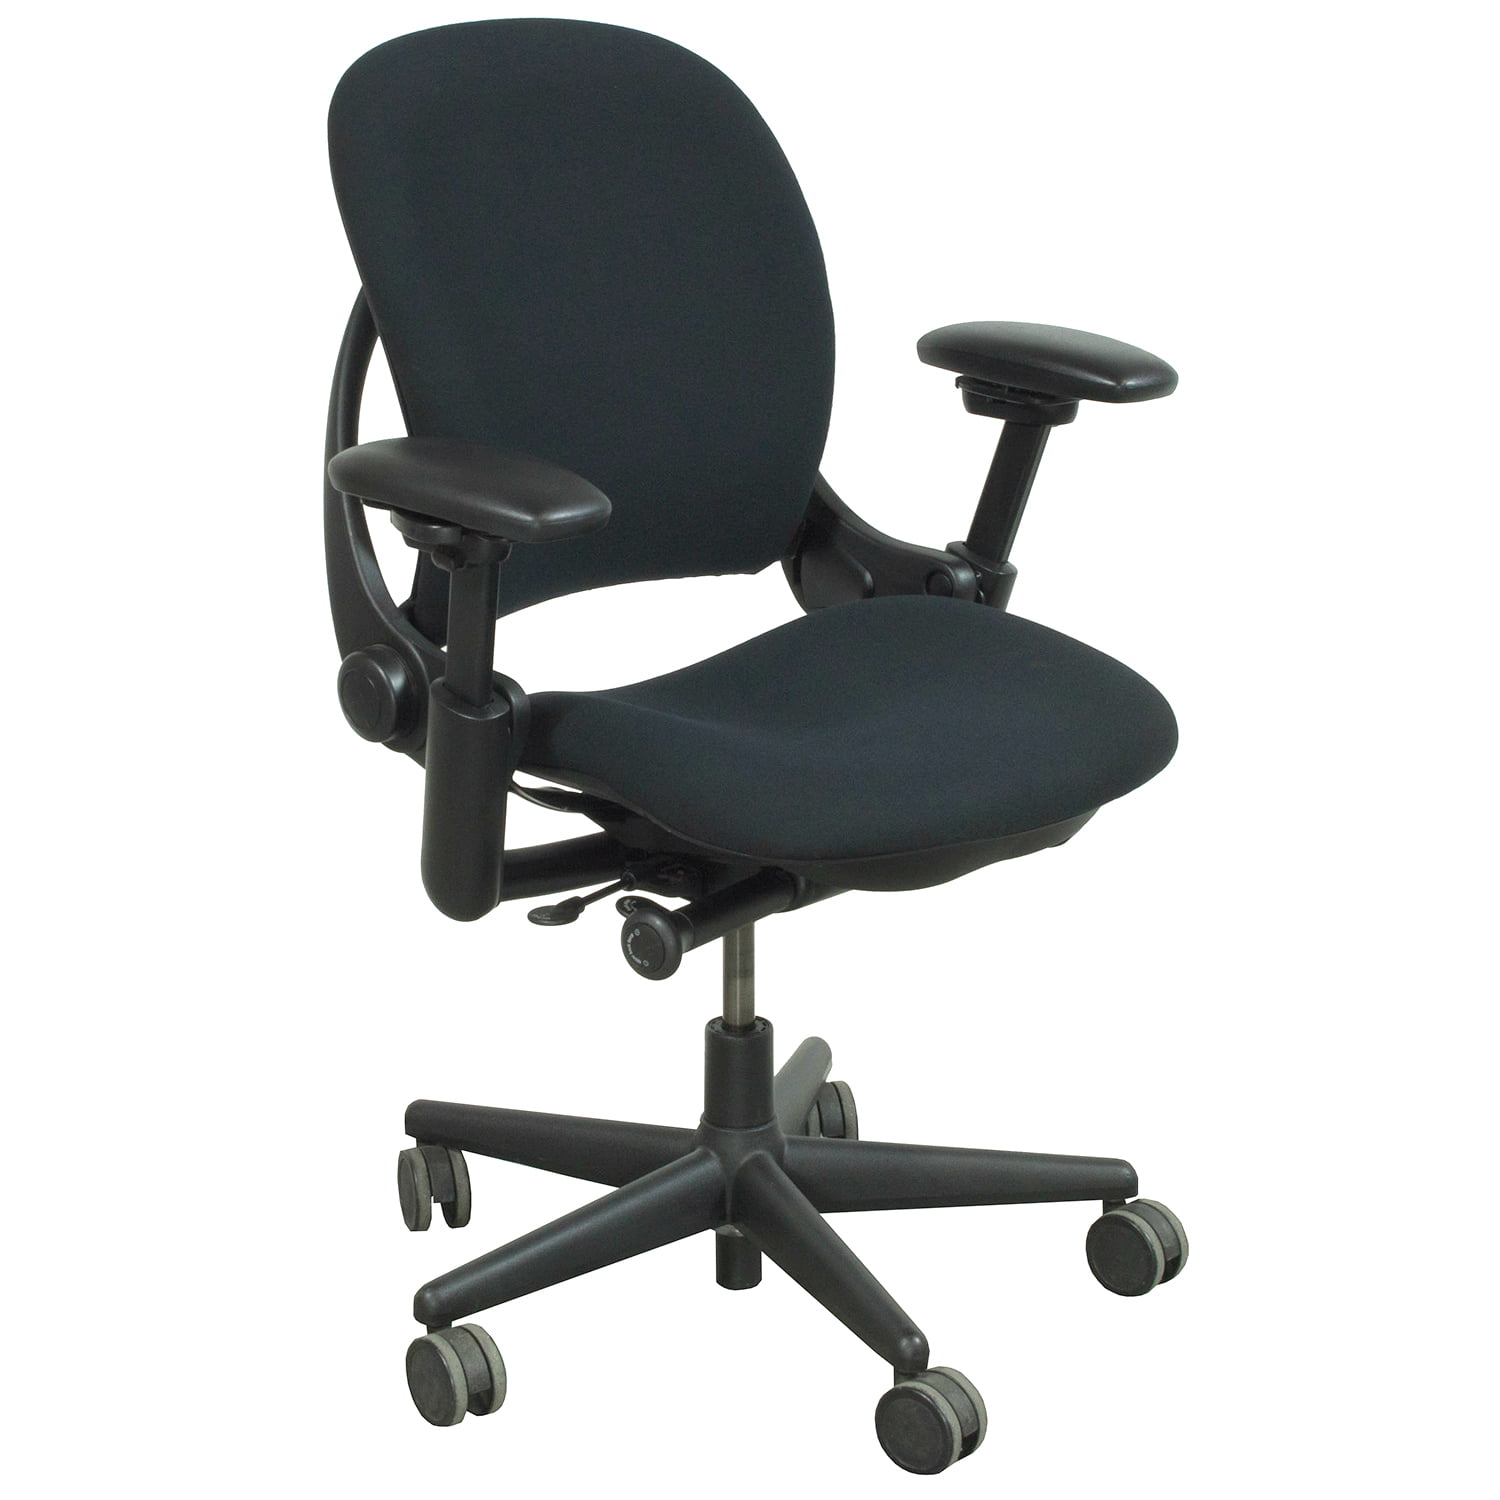 Steelcase Chairs Steelcase Leap 1 Office Chair Unisource Office Furniture